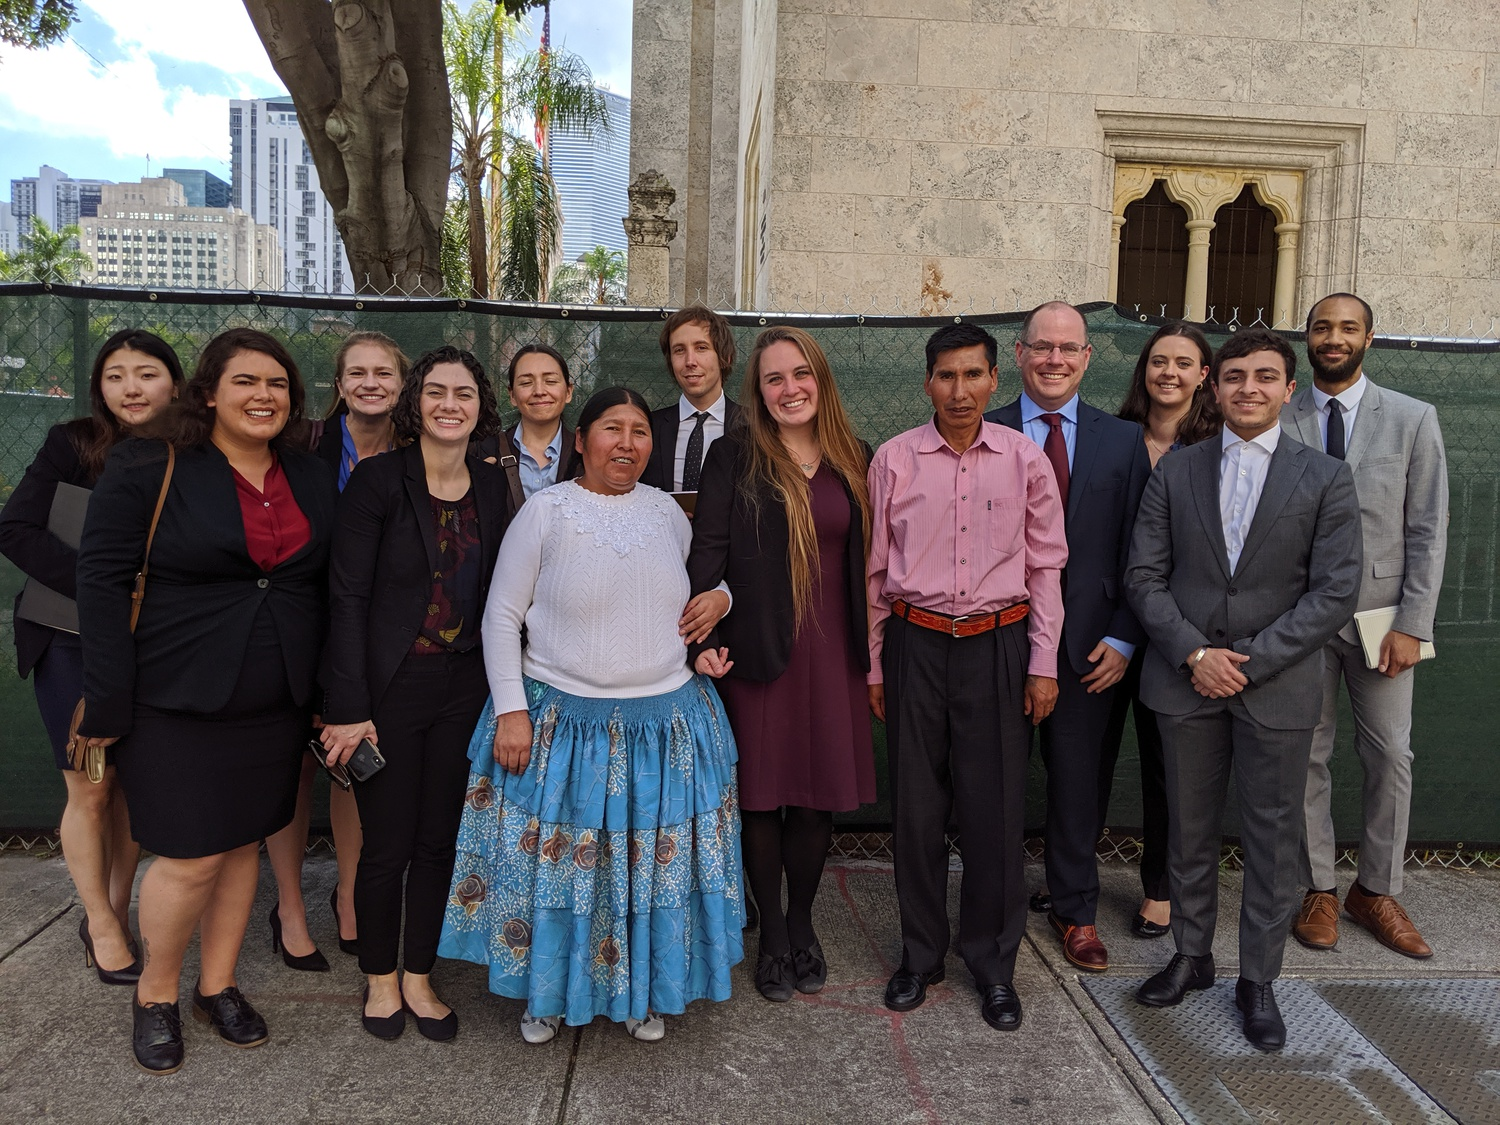 HLS students and instructors from the International Human Rights Clinic, alongside two of the plaintiffs in the case, gather outside the 11th Circuit Court of Appeals following oral argument in November 2019. The Mamanis, whose daughter Marlene was killed in the massacre, traveled to Florida for the hearing.